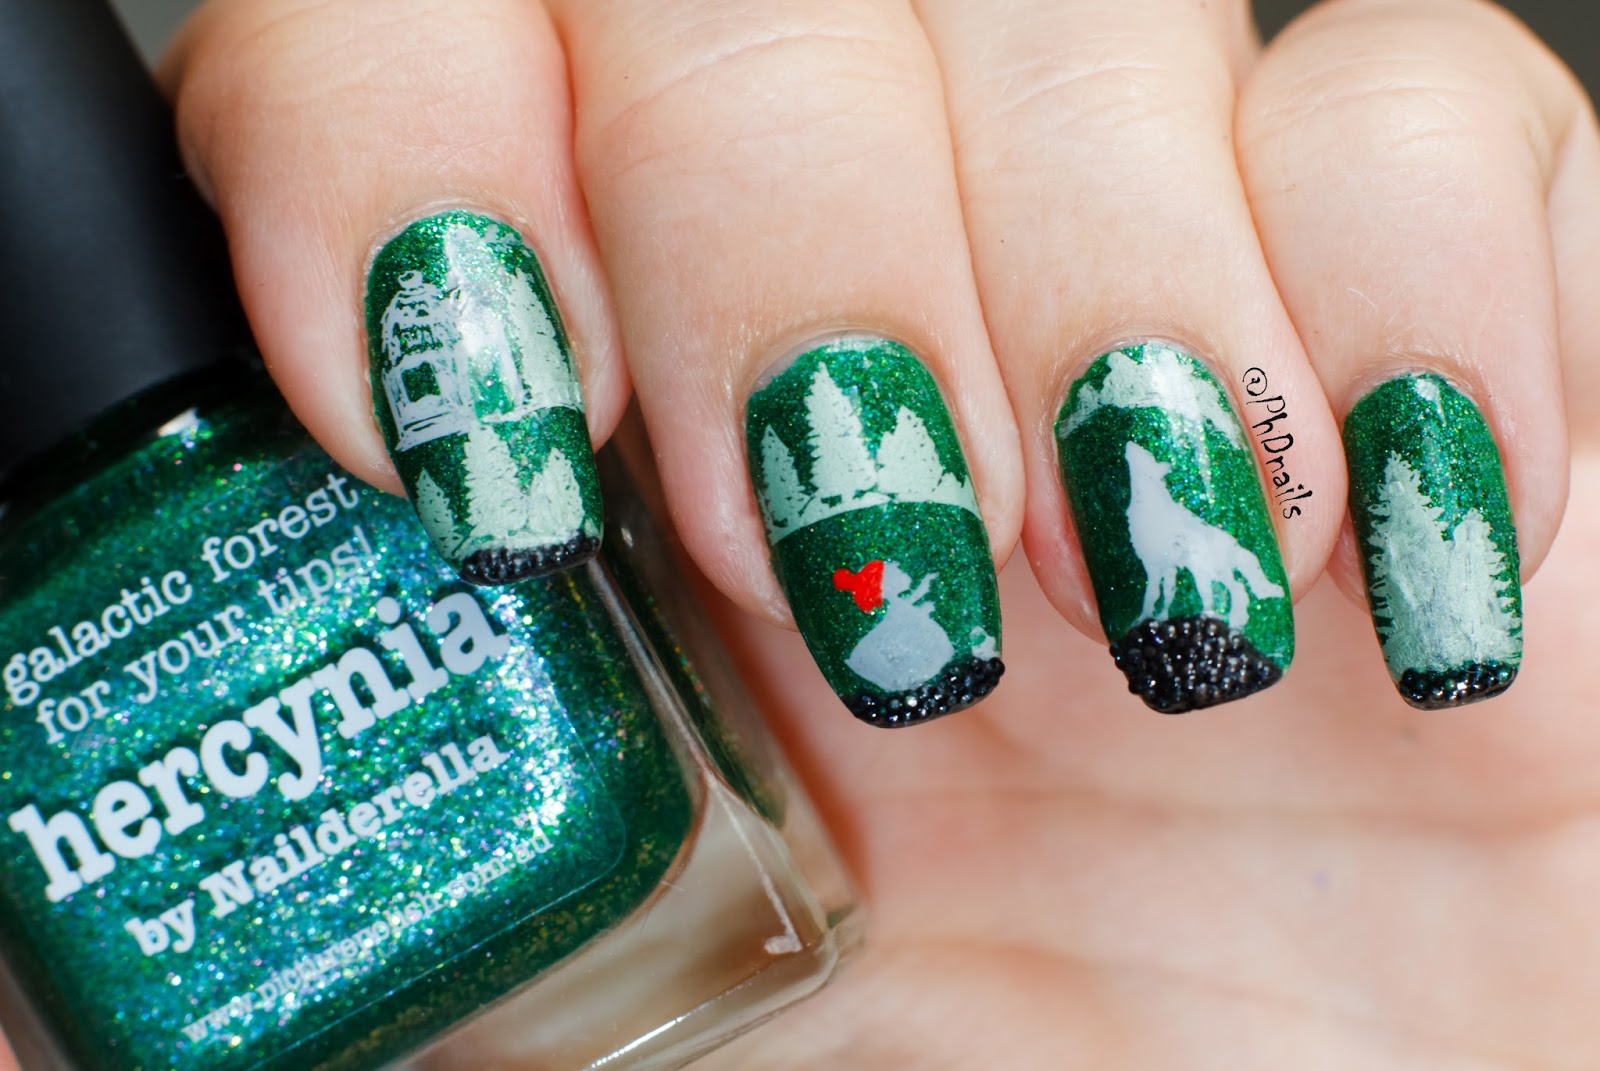 Phd nails stamping nail art with picture polish hercynia and phd nails stamping nail art with picture polish hercynia and caviar beads little red riding hood for omd3 prinsesfo Images